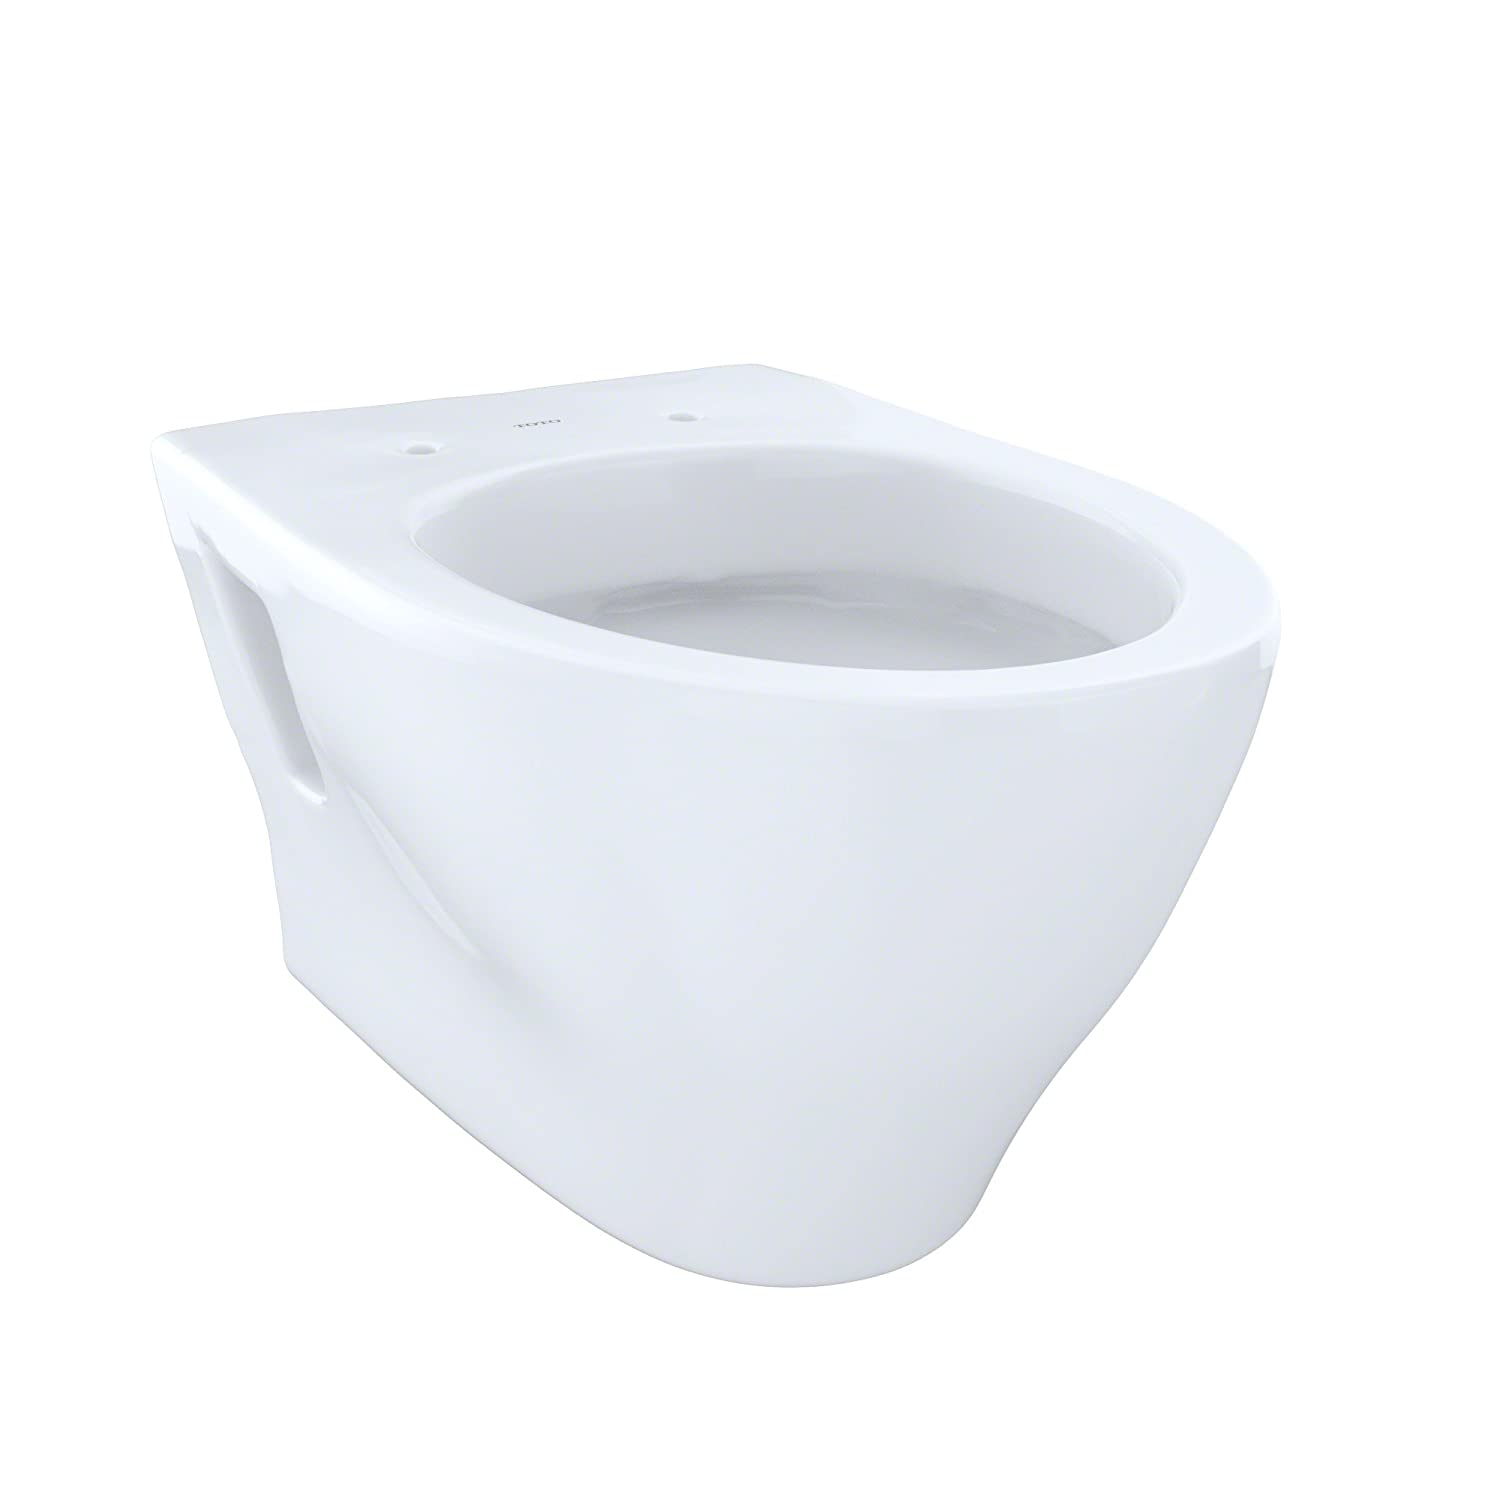 Top 5 Best Wall Mount Toilets Reviews in 2020 2